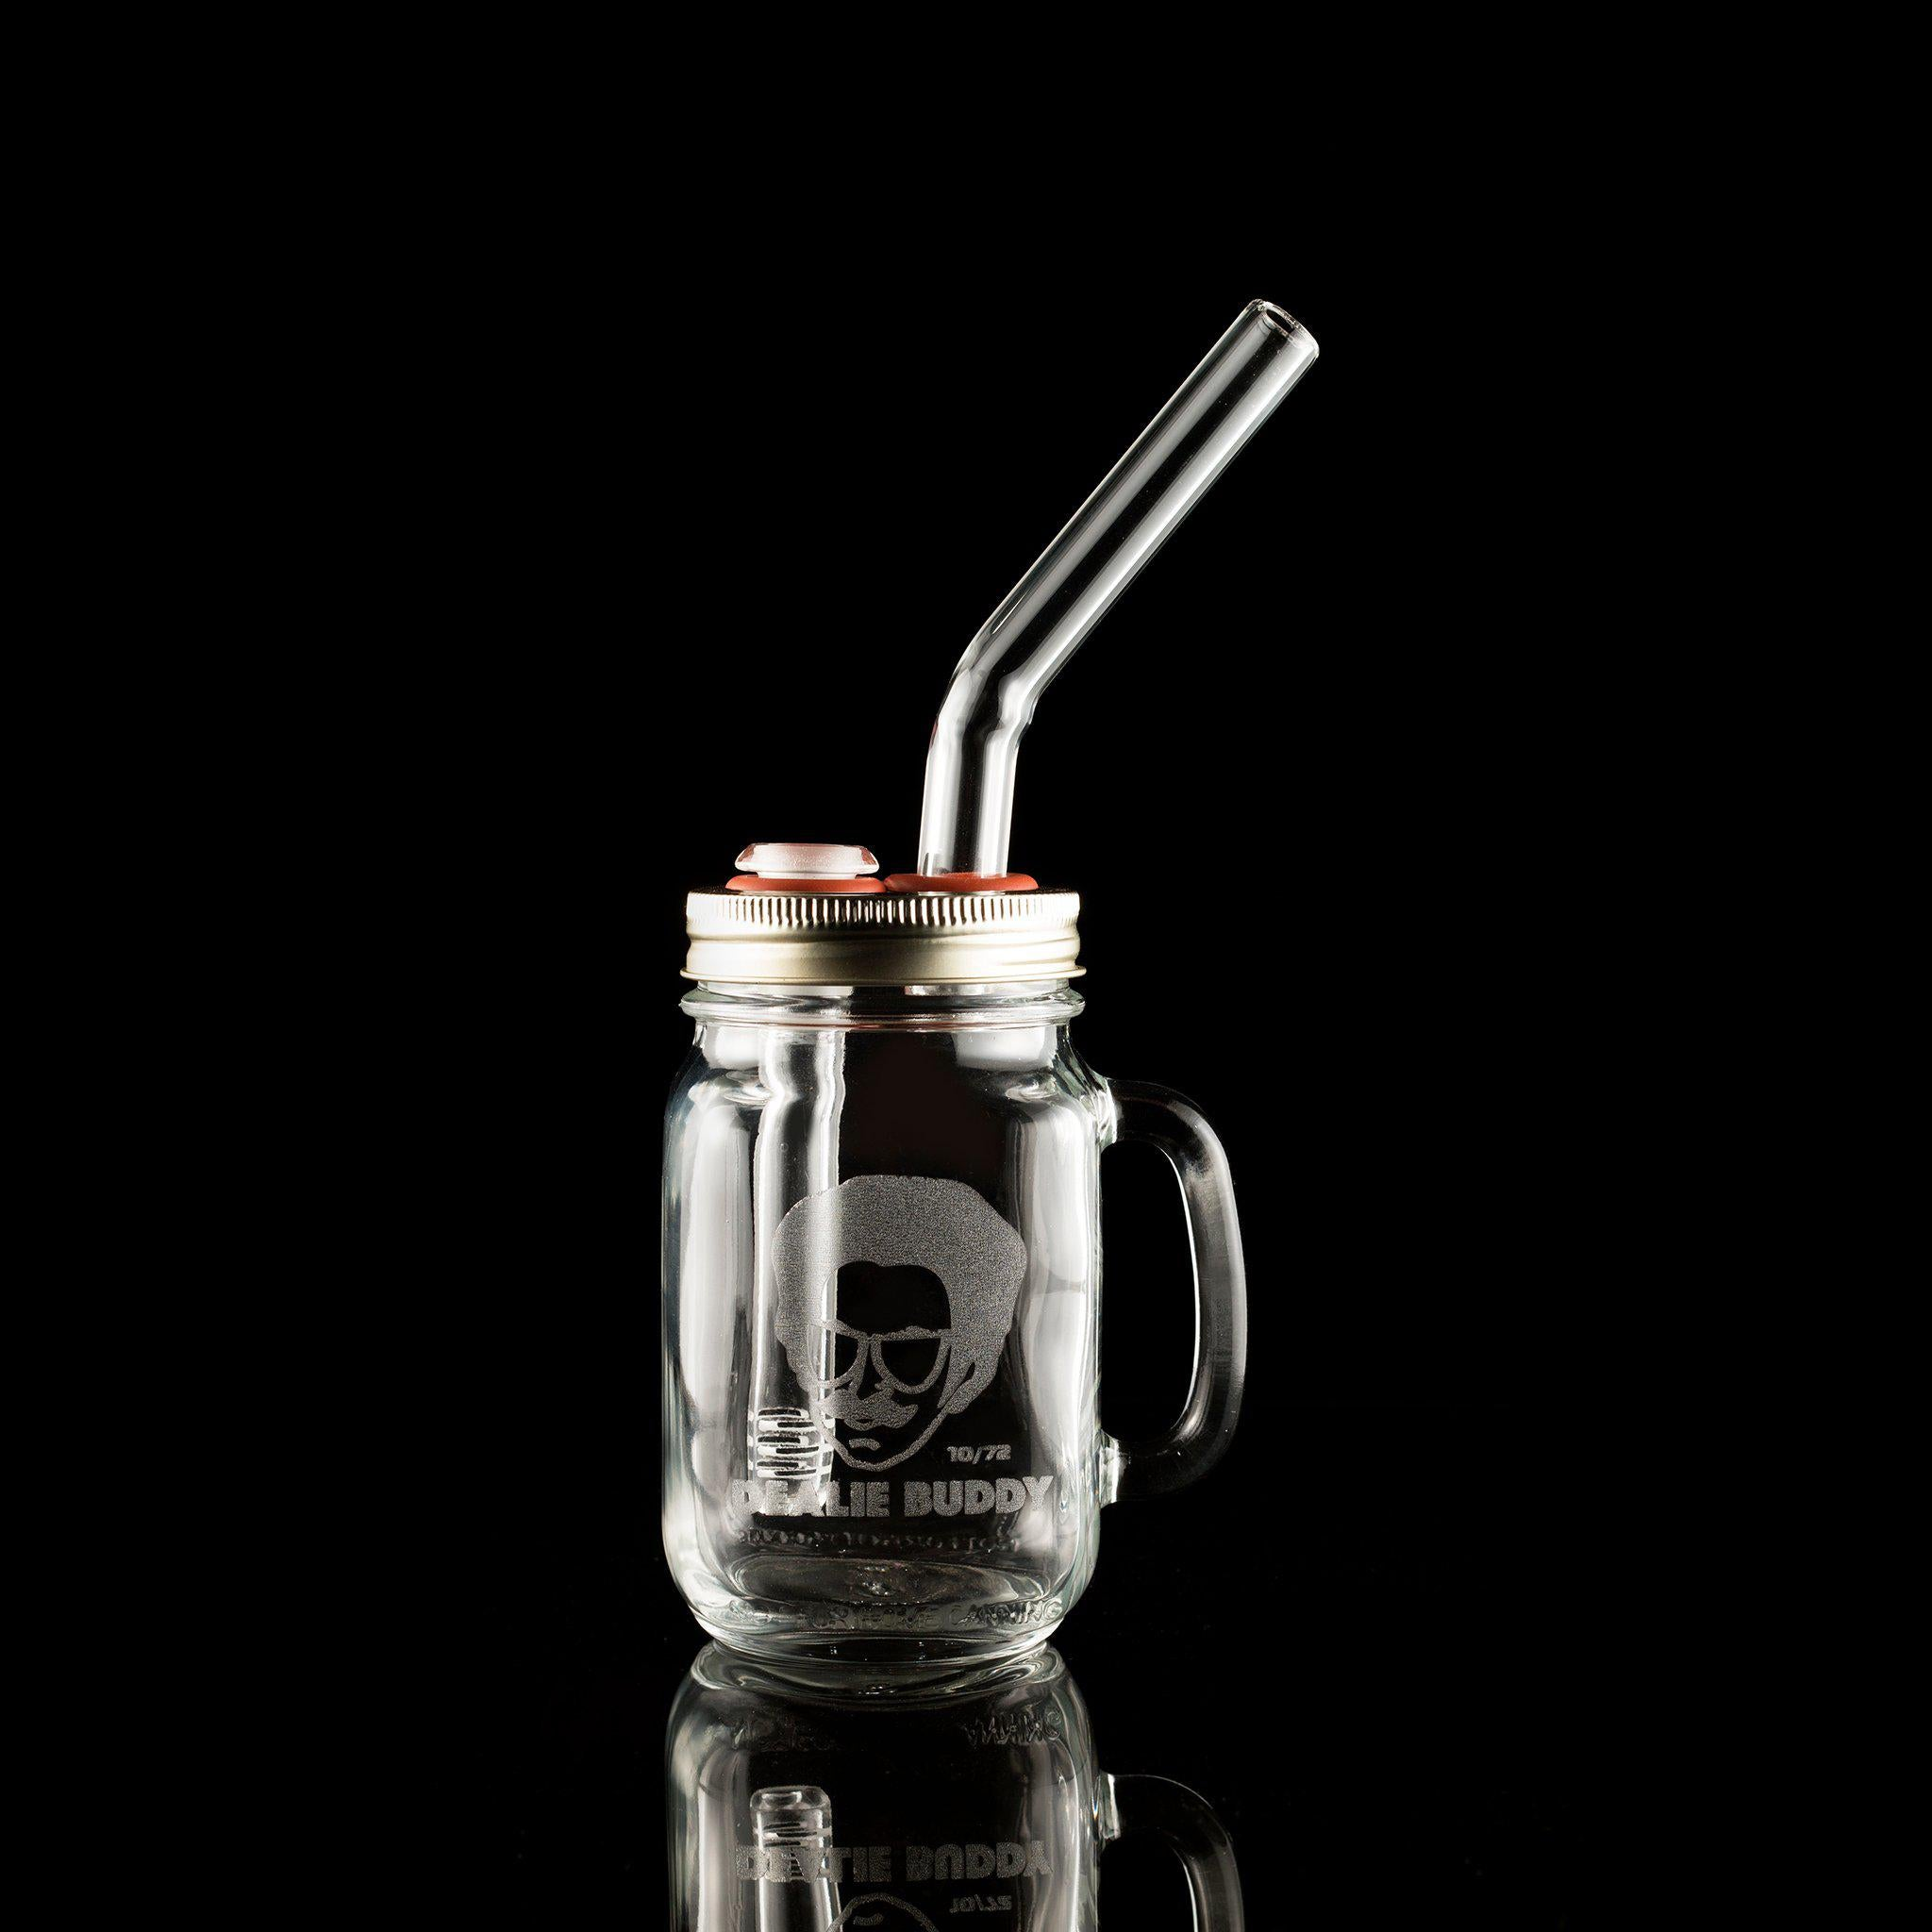 Dealie Buddy Limited Edition Etched Jar + Clear Straw